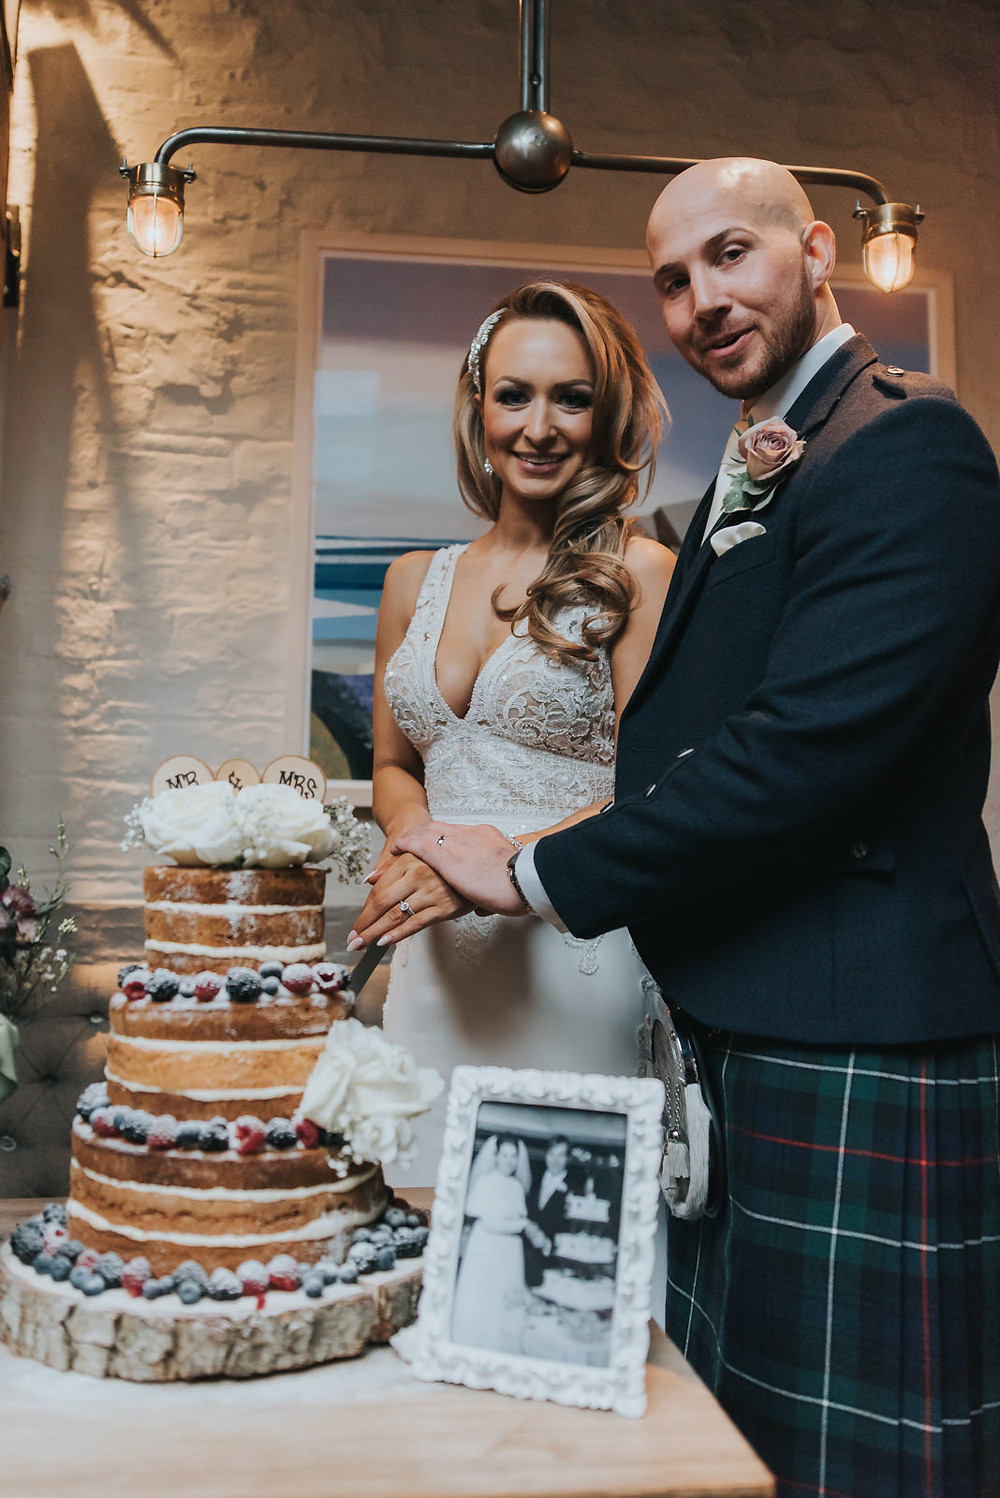 wedding photographer Glasgow, wedding photographer Edinburgh, wedding photographer Scotland, wedding photography Glasgow, wedding photography Scotland